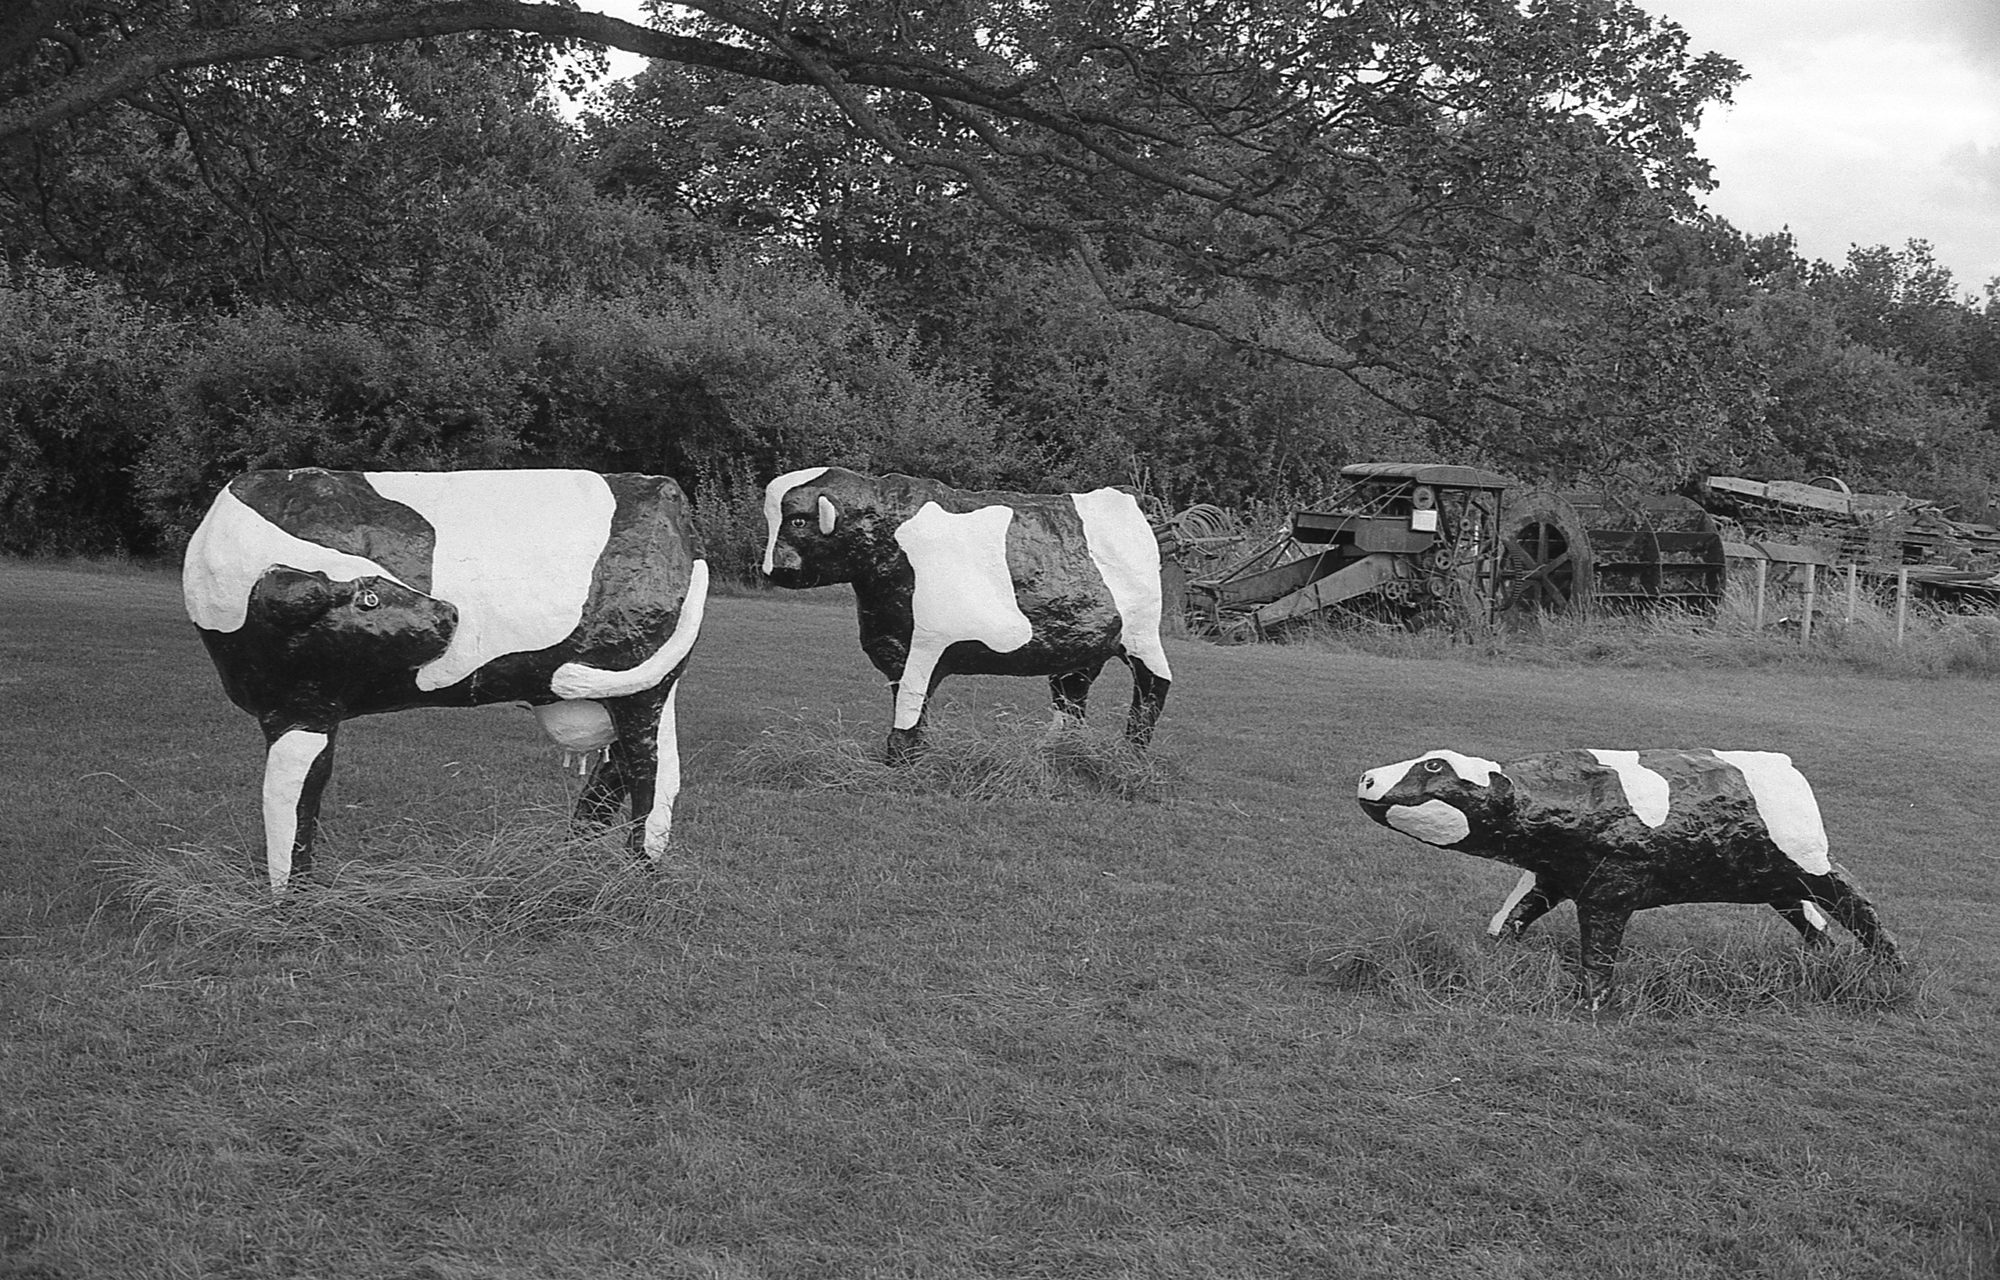 atlantean526 Replying to @ILFORDPhoto Concrete cows, Milton Keynes. Created by Canadian artist Liz Leyh in 1978, now safely grazing at Milton Keynes museum. #FP4plus film, developed in Perceptol 1:1/ 15mins/ 68°F. Minolta 600si classic/ 35-70mm f4 zoom August 2019 #ilfordphoto #fridayfavourites